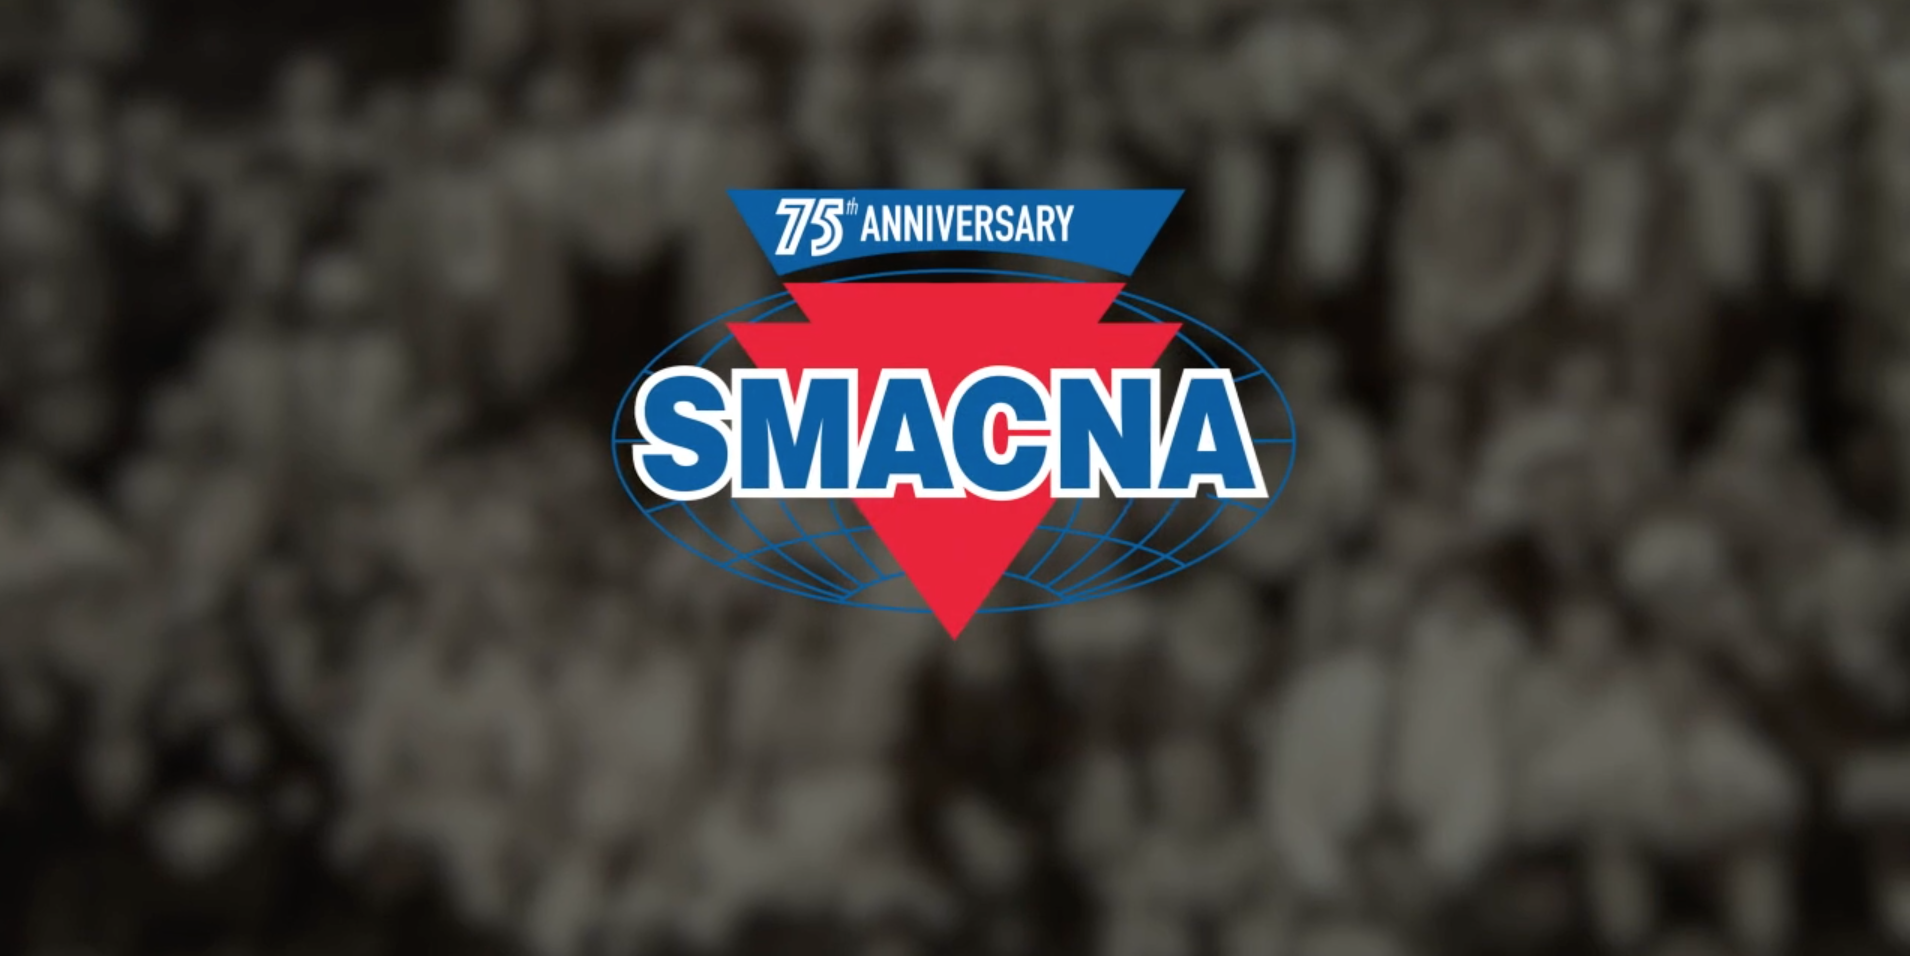 SMACNA: A Nod to the Past, Focused on the Future